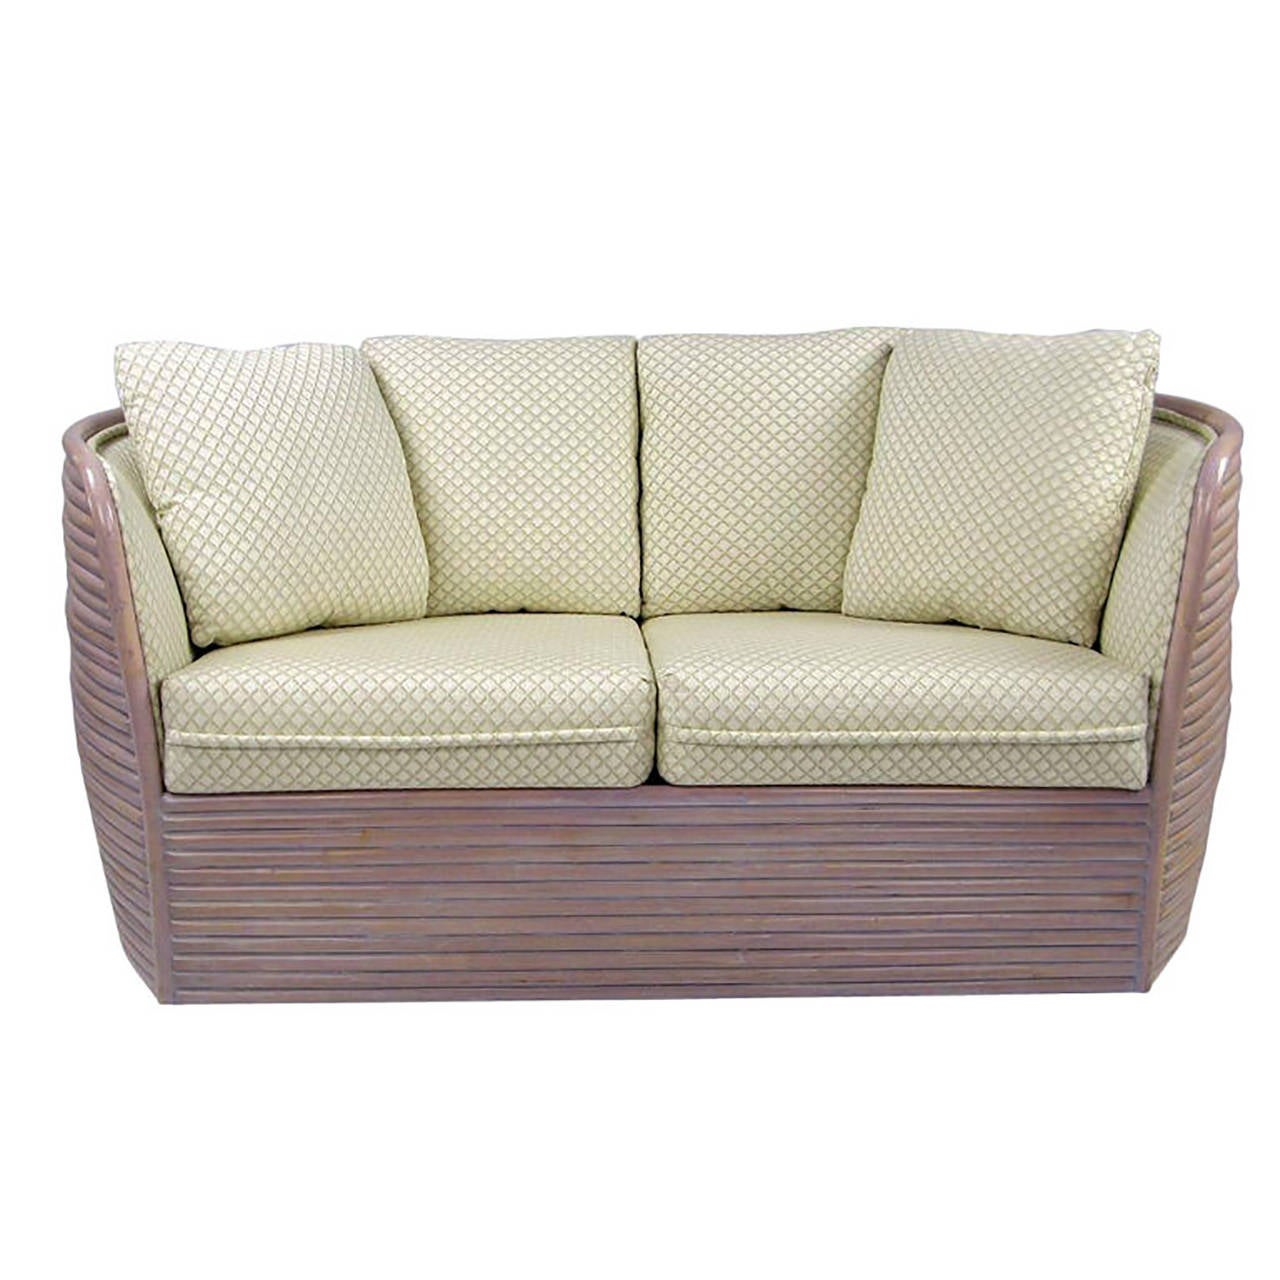 Baker takes some design cues from the 1970s with this bombe rattan settee. Reeded frame that bows out in the middle is washed in white primer and lavender lacquer. Two-seat cushions, four back cushions, all upholstered in a vintage cream, taupe and